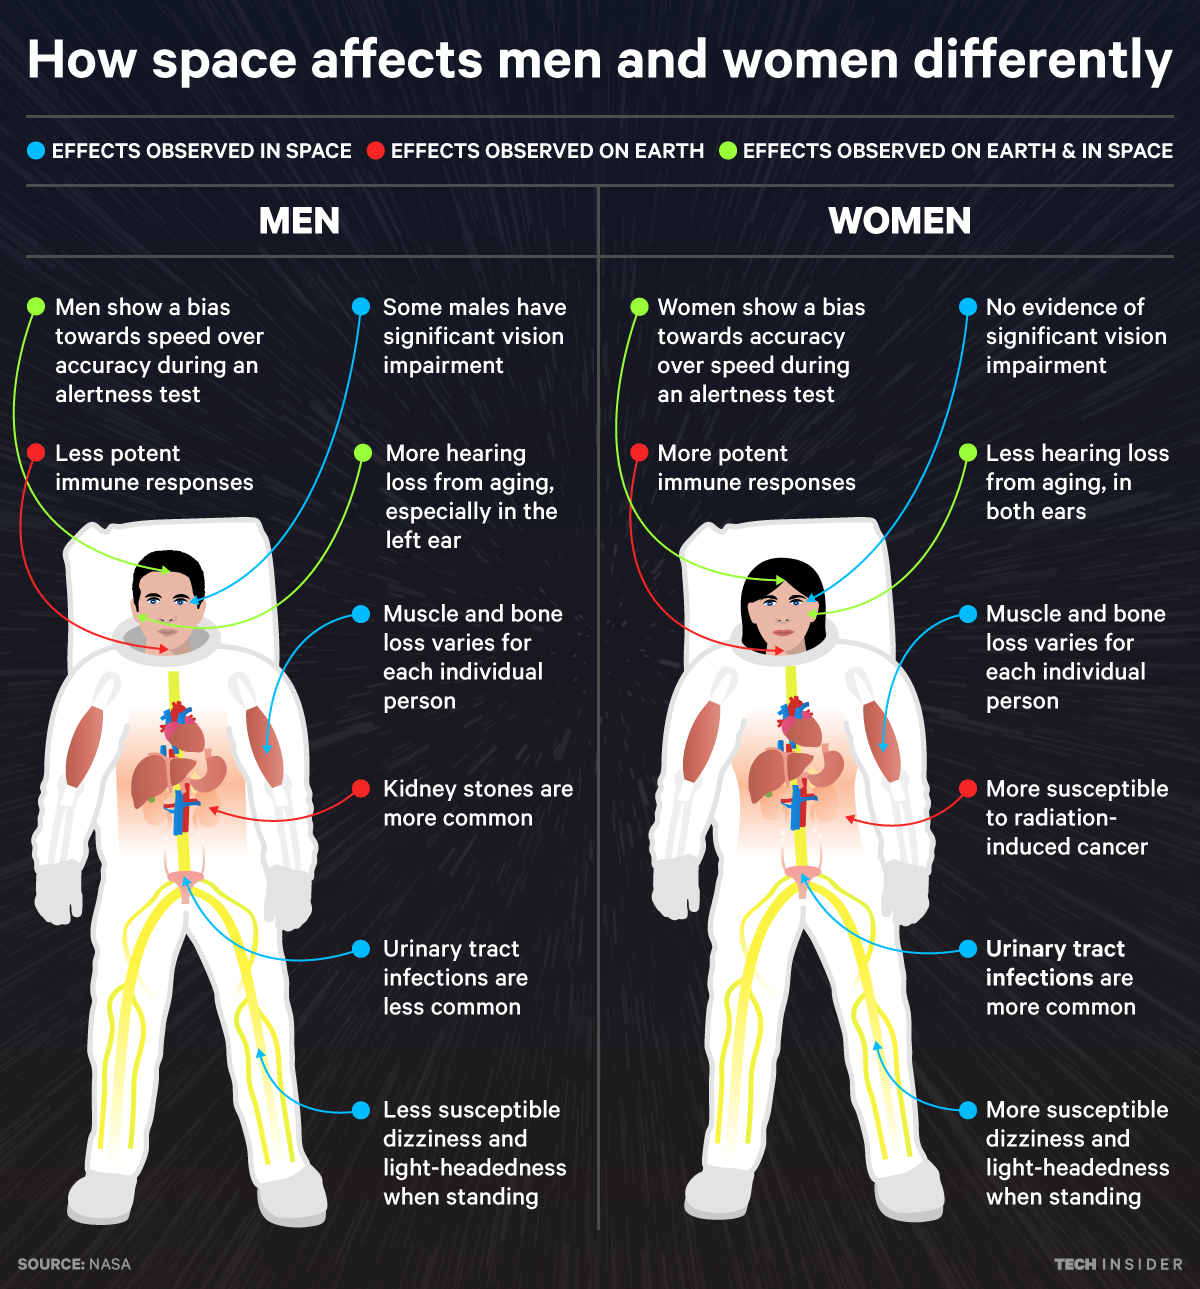 How space affects men and women differently